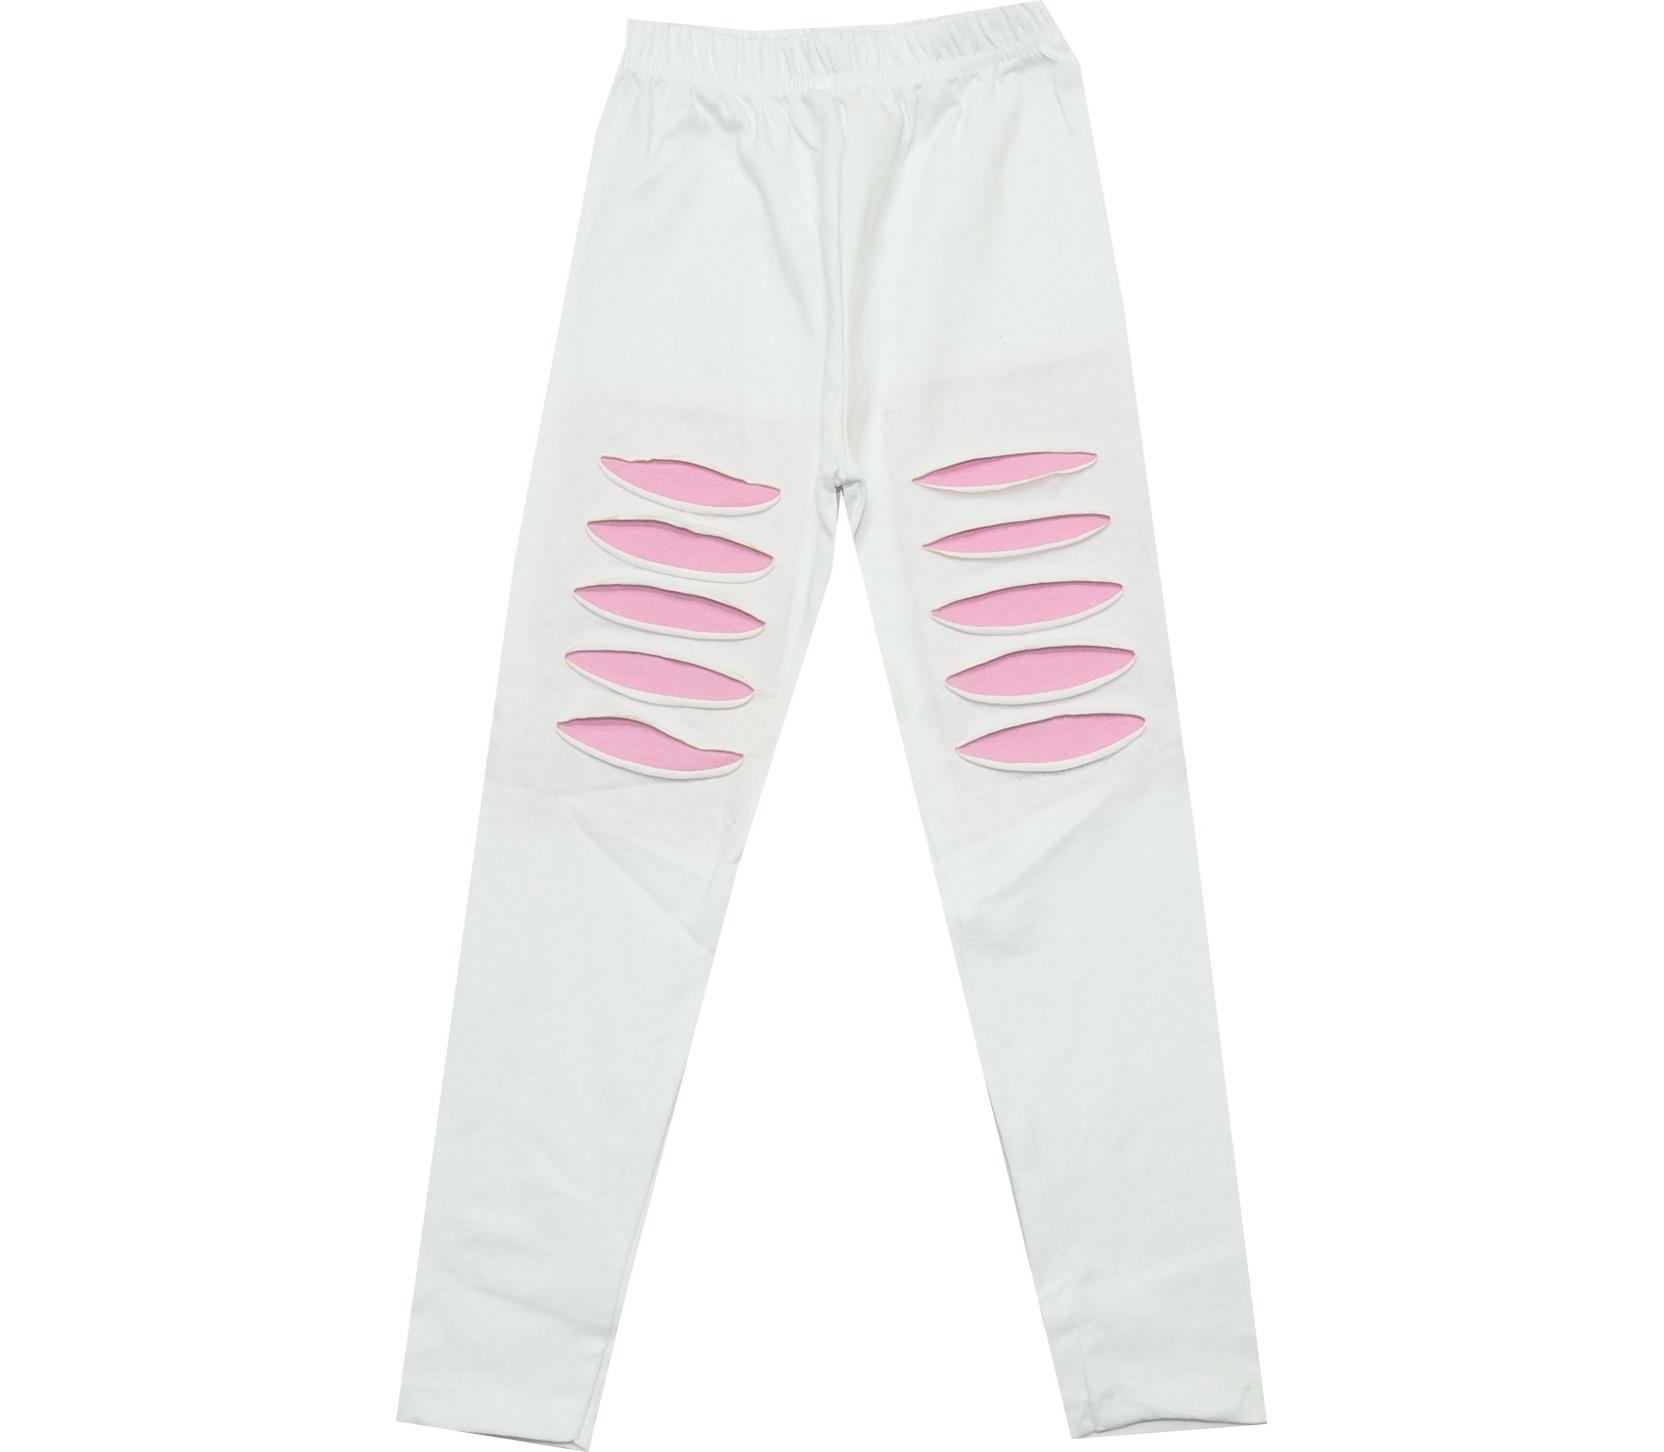 DECORATIVE RIPS DESIGNED TIGHT FOR GIRL (4-5-6-7-8 AGE)